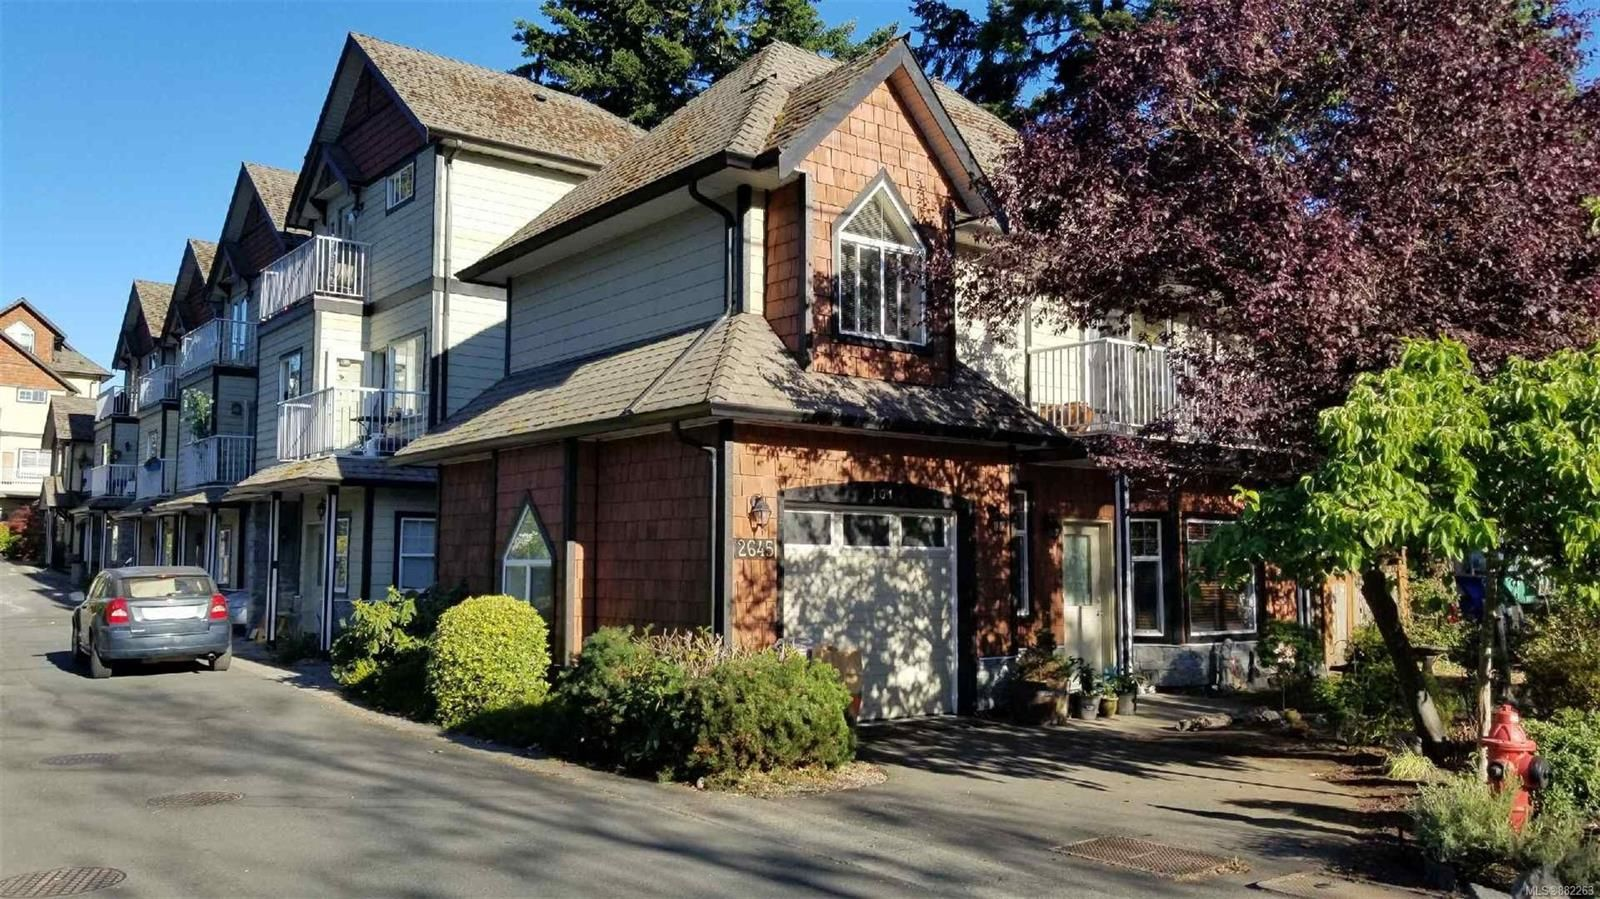 Main Photo: 101 2645 Millstream Rd in : La Mill Hill Row/Townhouse for sale (Langford)  : MLS®# 882263